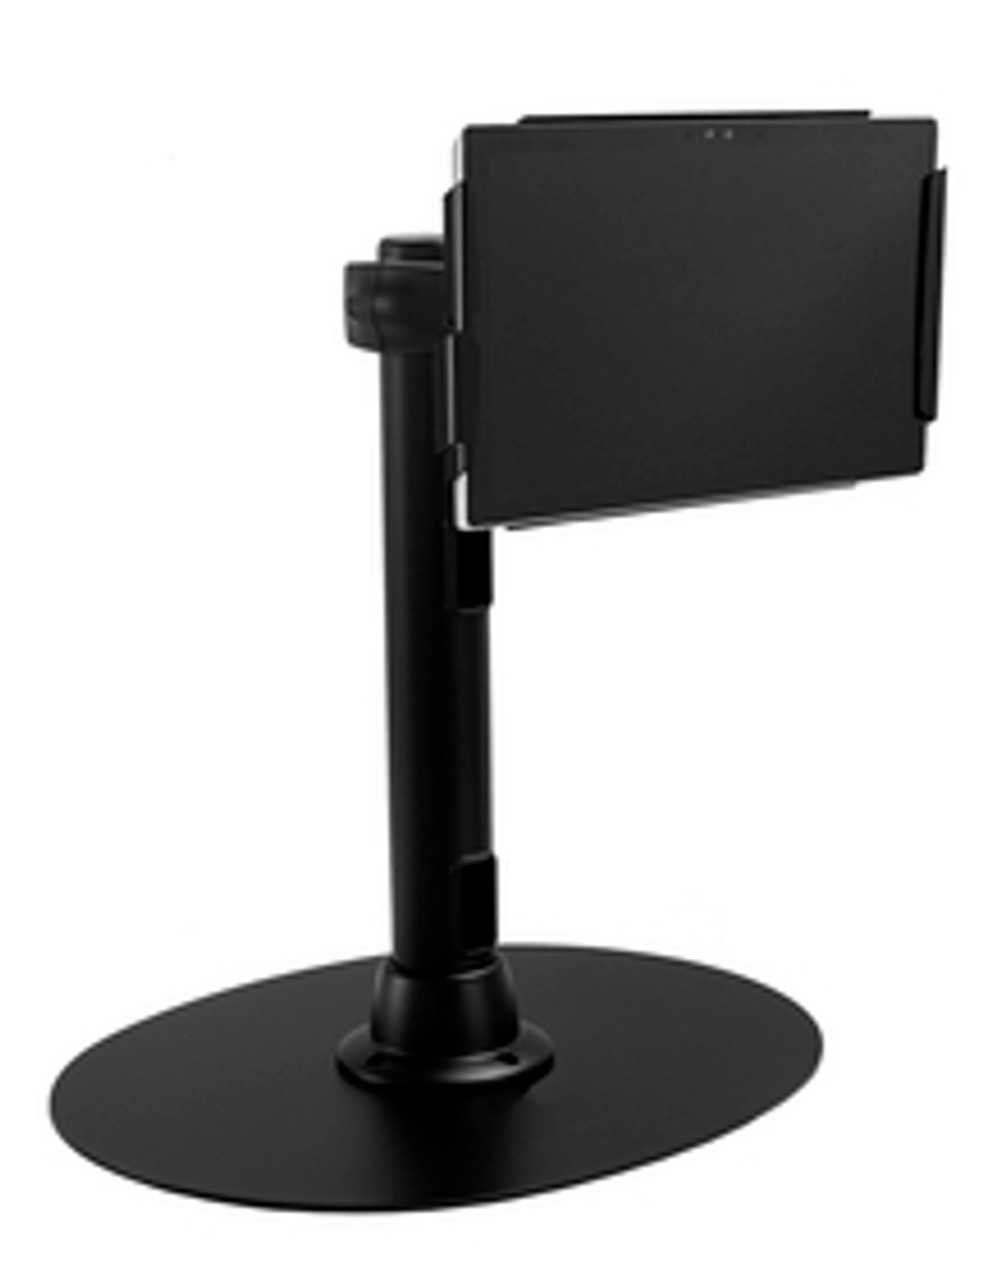 Microsoft Surface 3 Preconfigured Mount And Stand